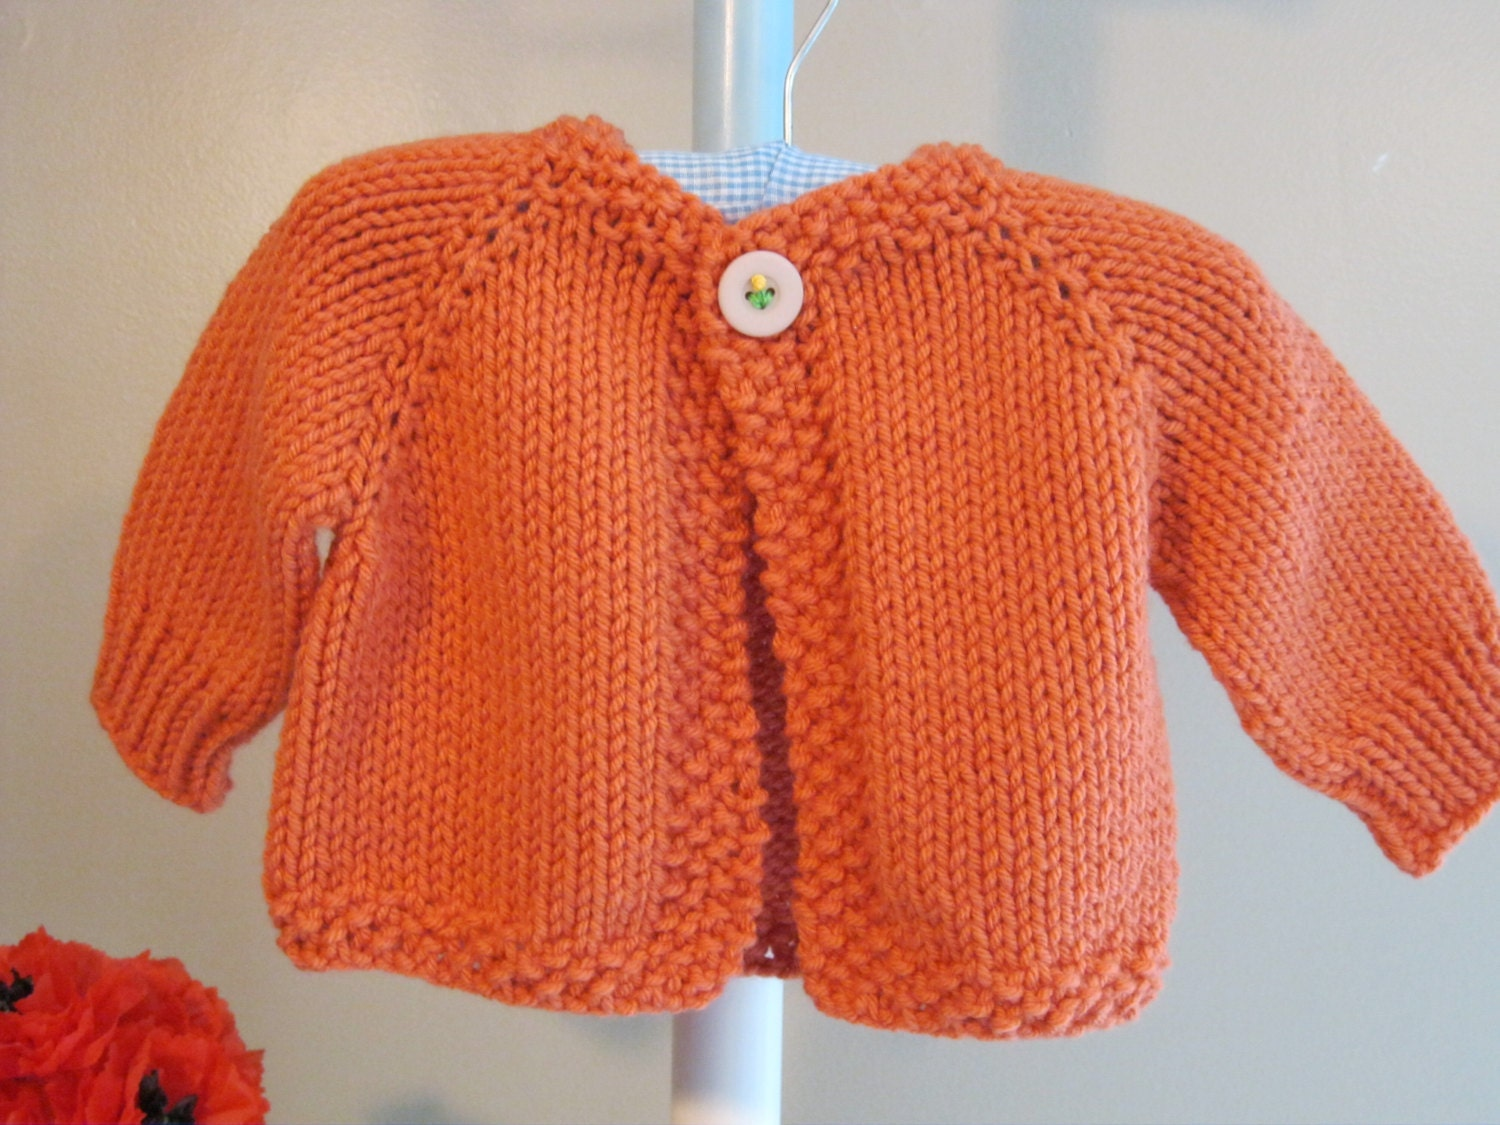 Knitting Cardigan For Baby : Melanie s cardigan knitting pattern for a baby